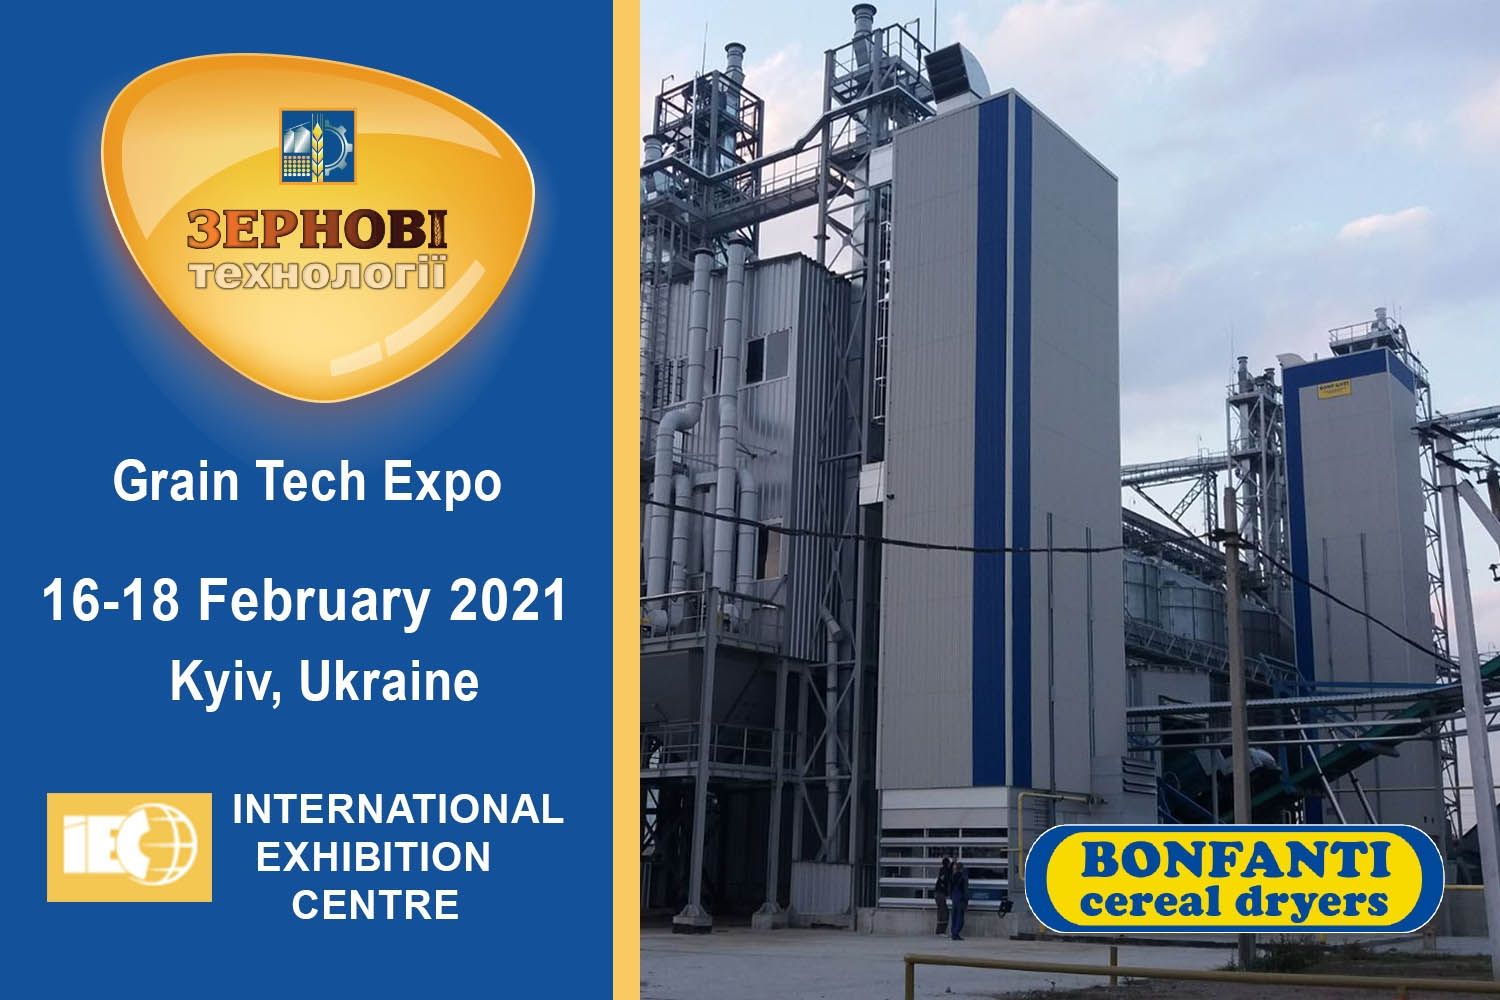 Grain Tech Expo 16-18 February 2021